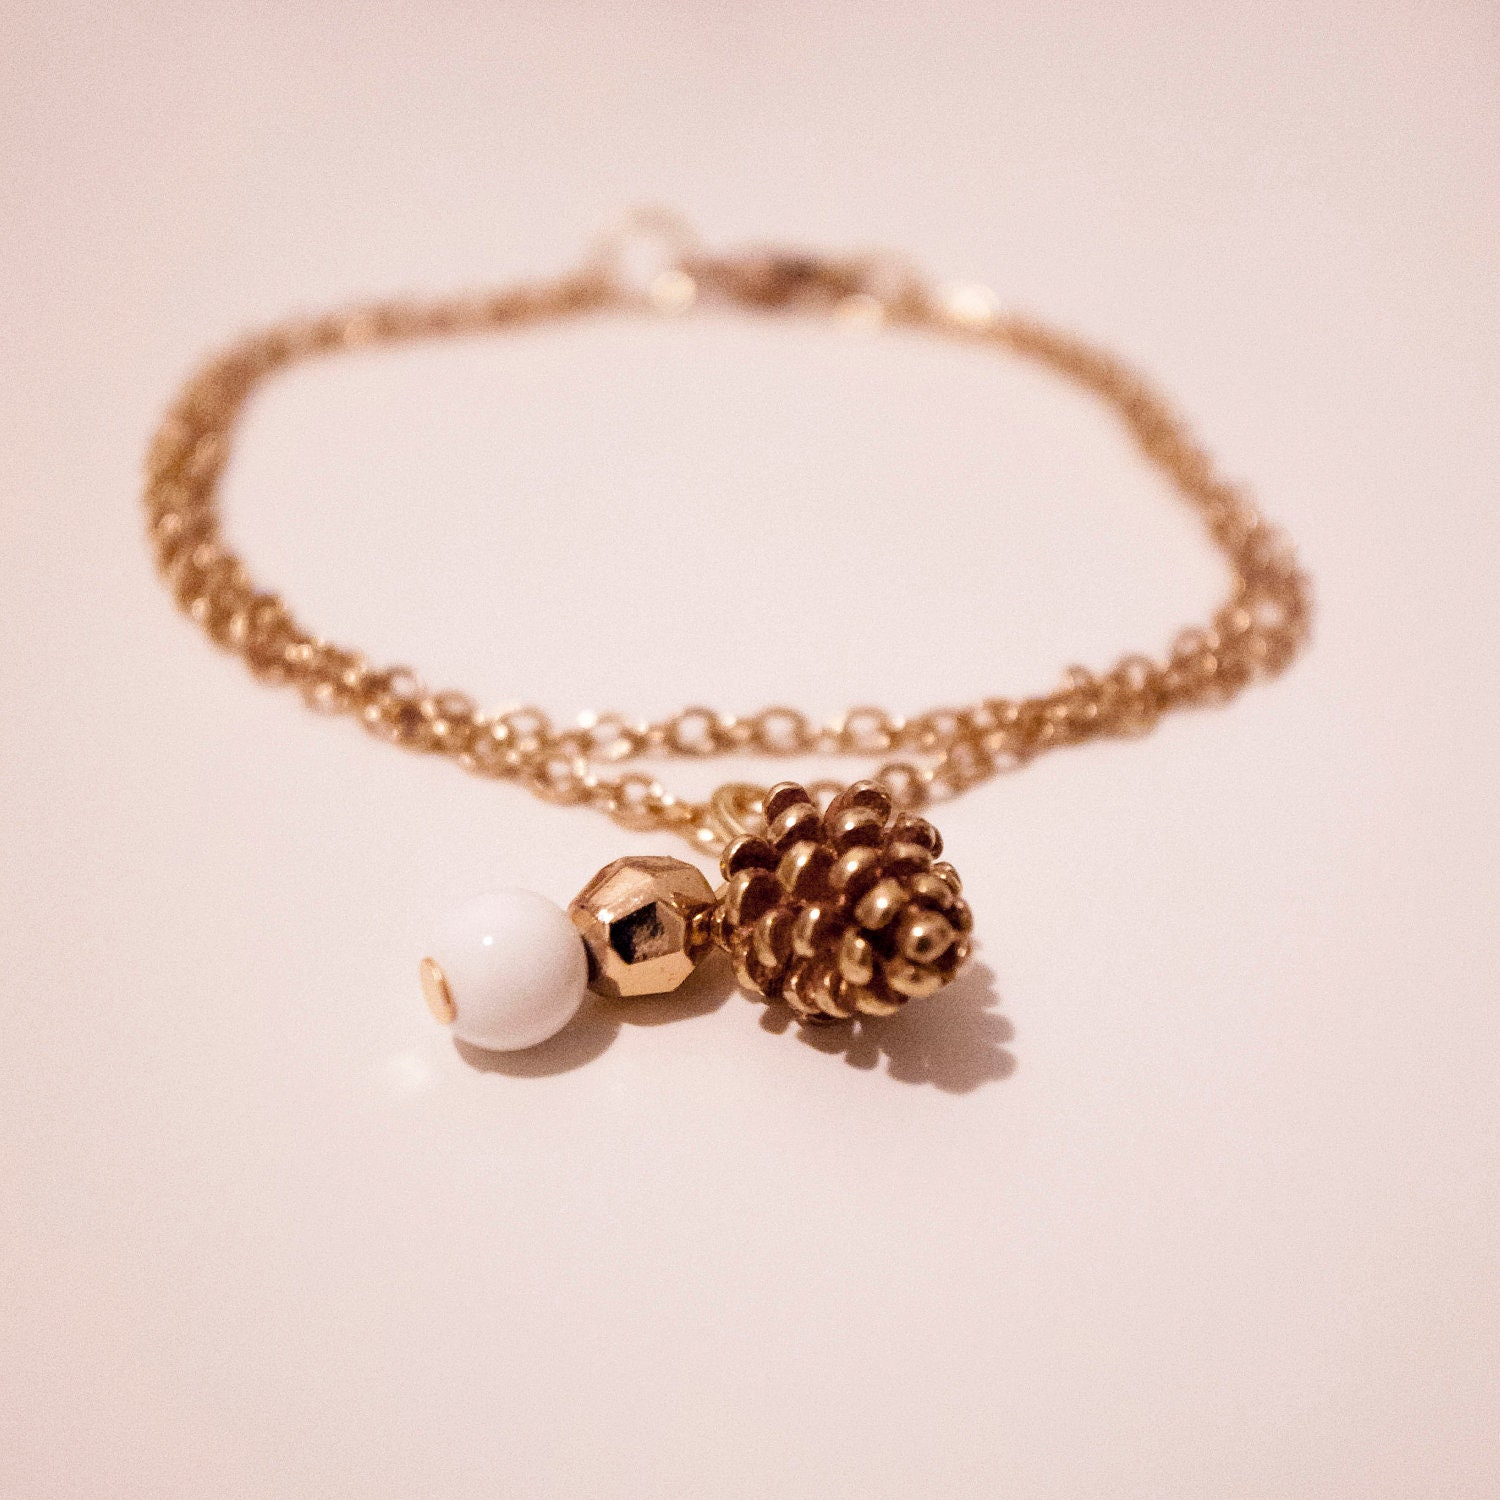 Gold Plated Acorn Double-Chained Bracelet - Getting Ready for Fall/Autumn - Custom Order Available